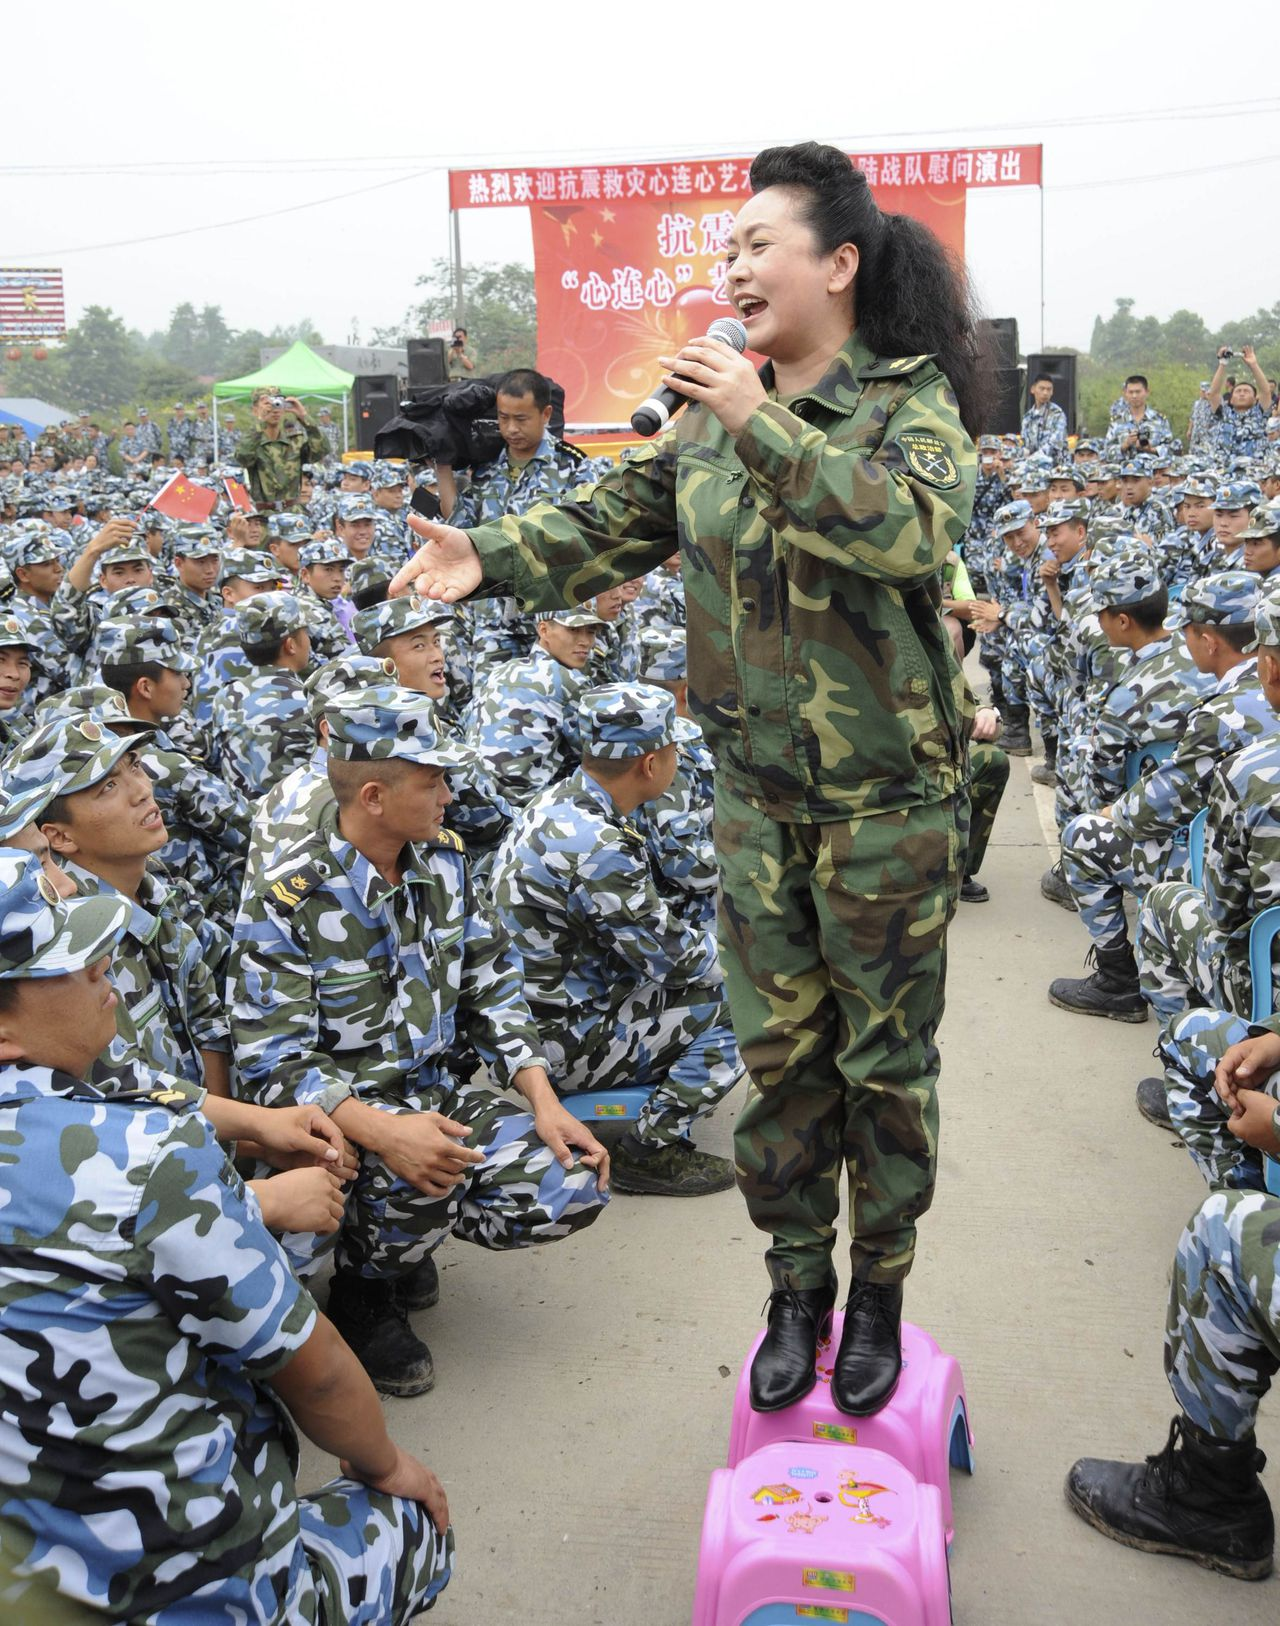 China's new first lady and singer Peng Liyuan sings during a performance as she visits soldiers and residents after the Wenchuan earthquake in Deyang, Sichuan province June 21, 2008. Peng is best known in China as a singer, and for many years was arguably better known and certainly more popular than her husband who is China's President Xi Jinping. Picture taken June 21, 2008. REUTERS/Stringer (CHINA - Tags: ENTERTAINMENT POLITICS MILITARY) CHINA OUT. NO COMMERCIAL OR EDITORIAL SALES IN CHINA